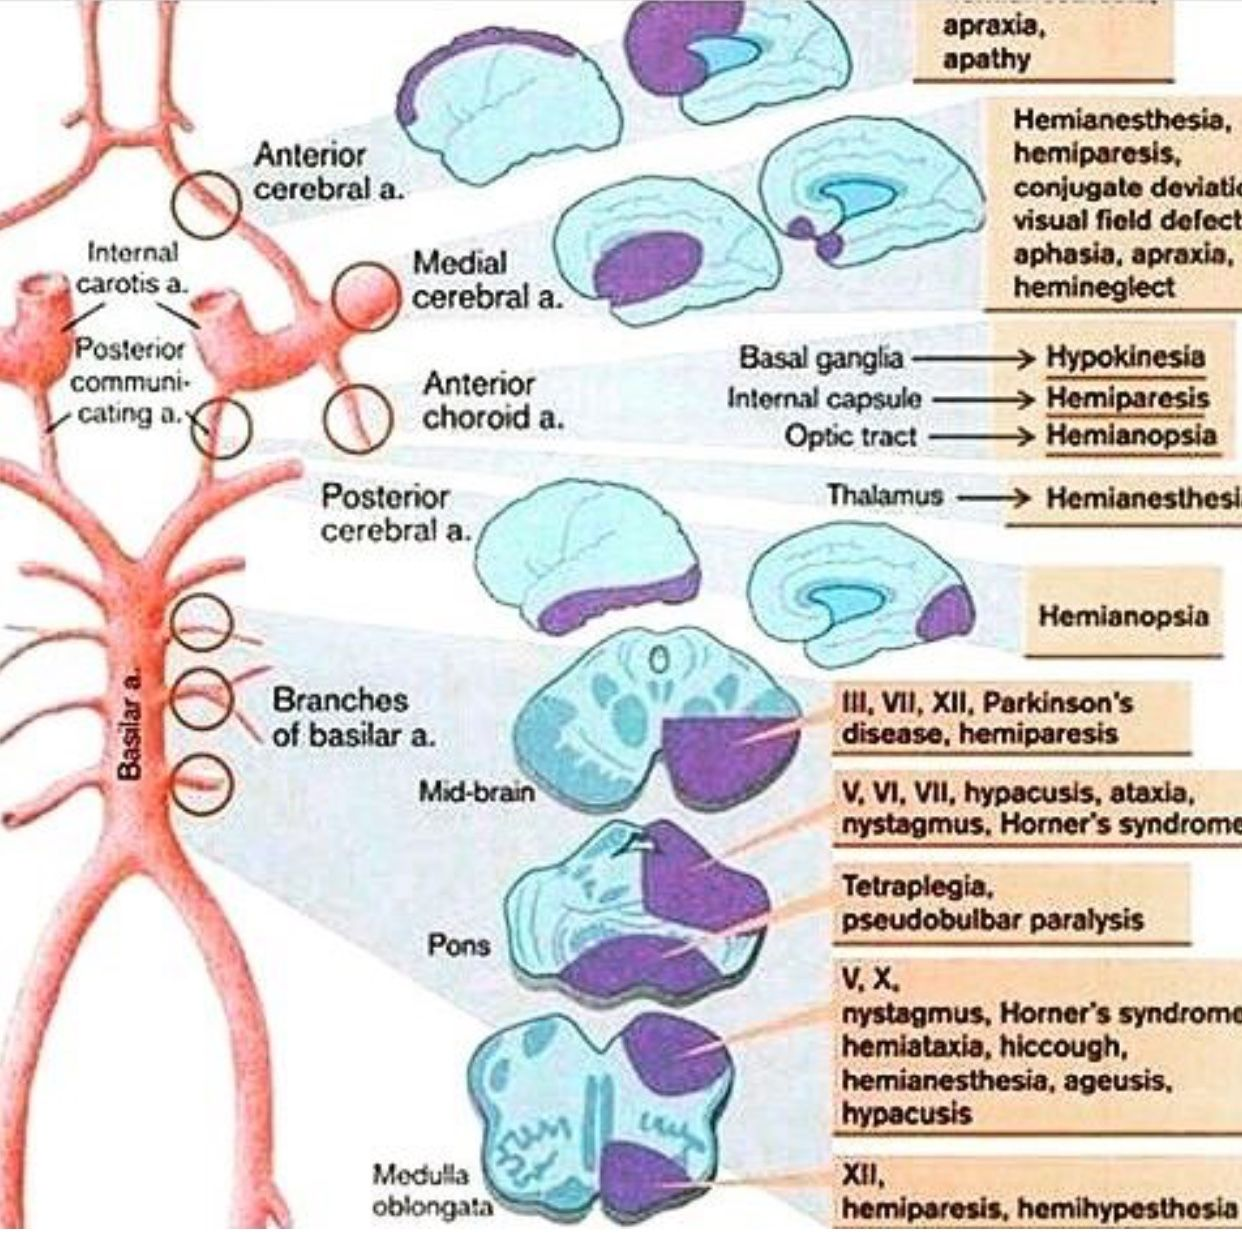 Pin by Gerardo Valenzuela on Neuroimagen | Pinterest | Anatomy ...